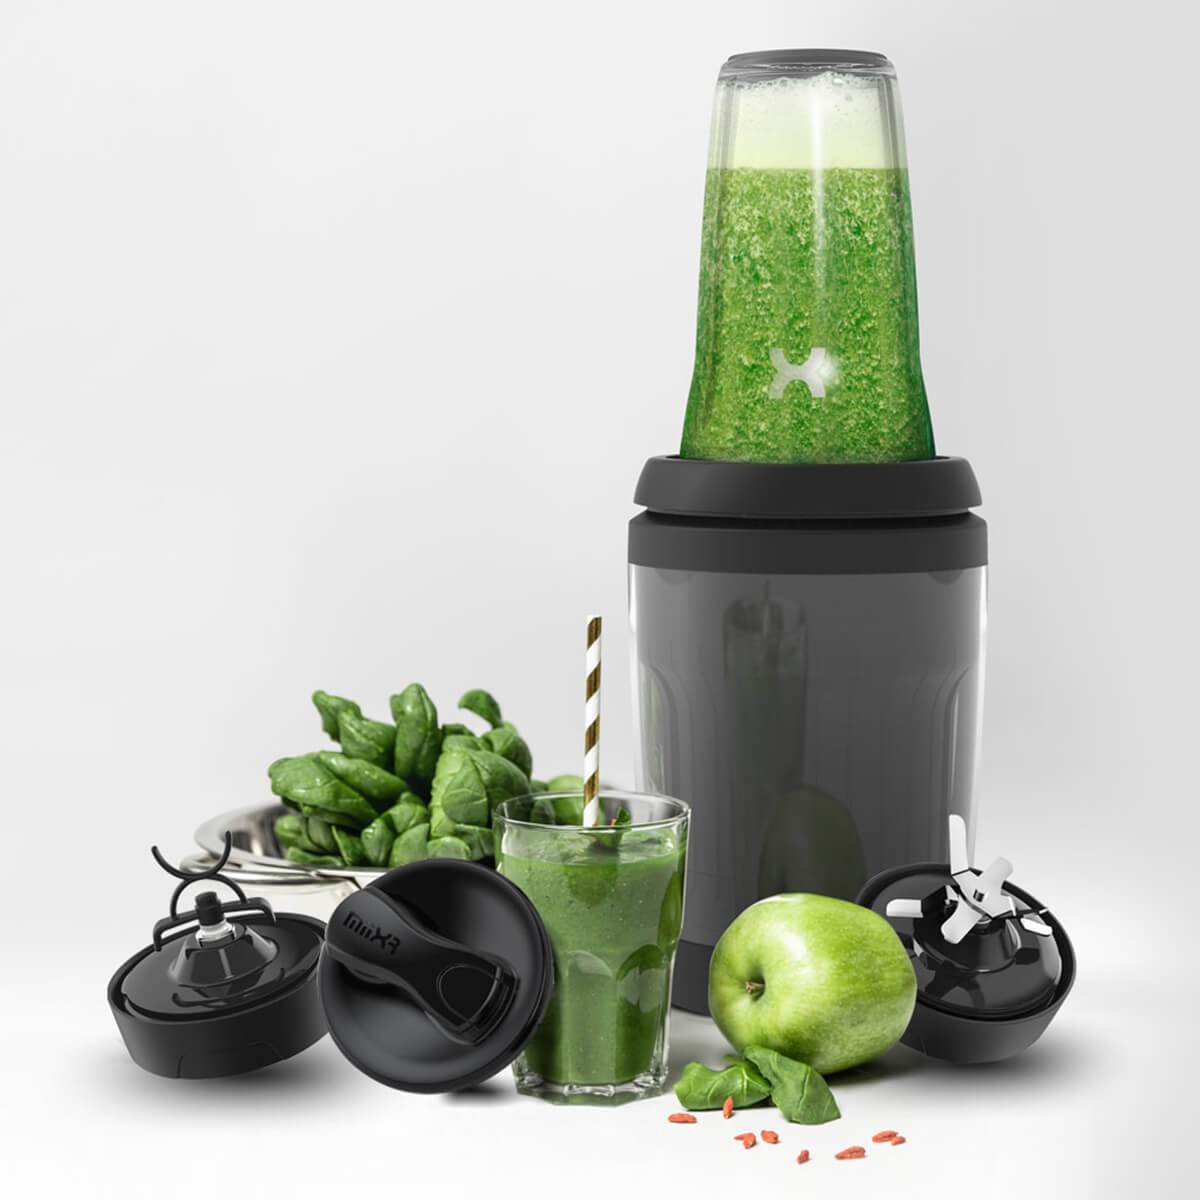 PROMiXX_MiiXR_X7_blender_green_smoothie